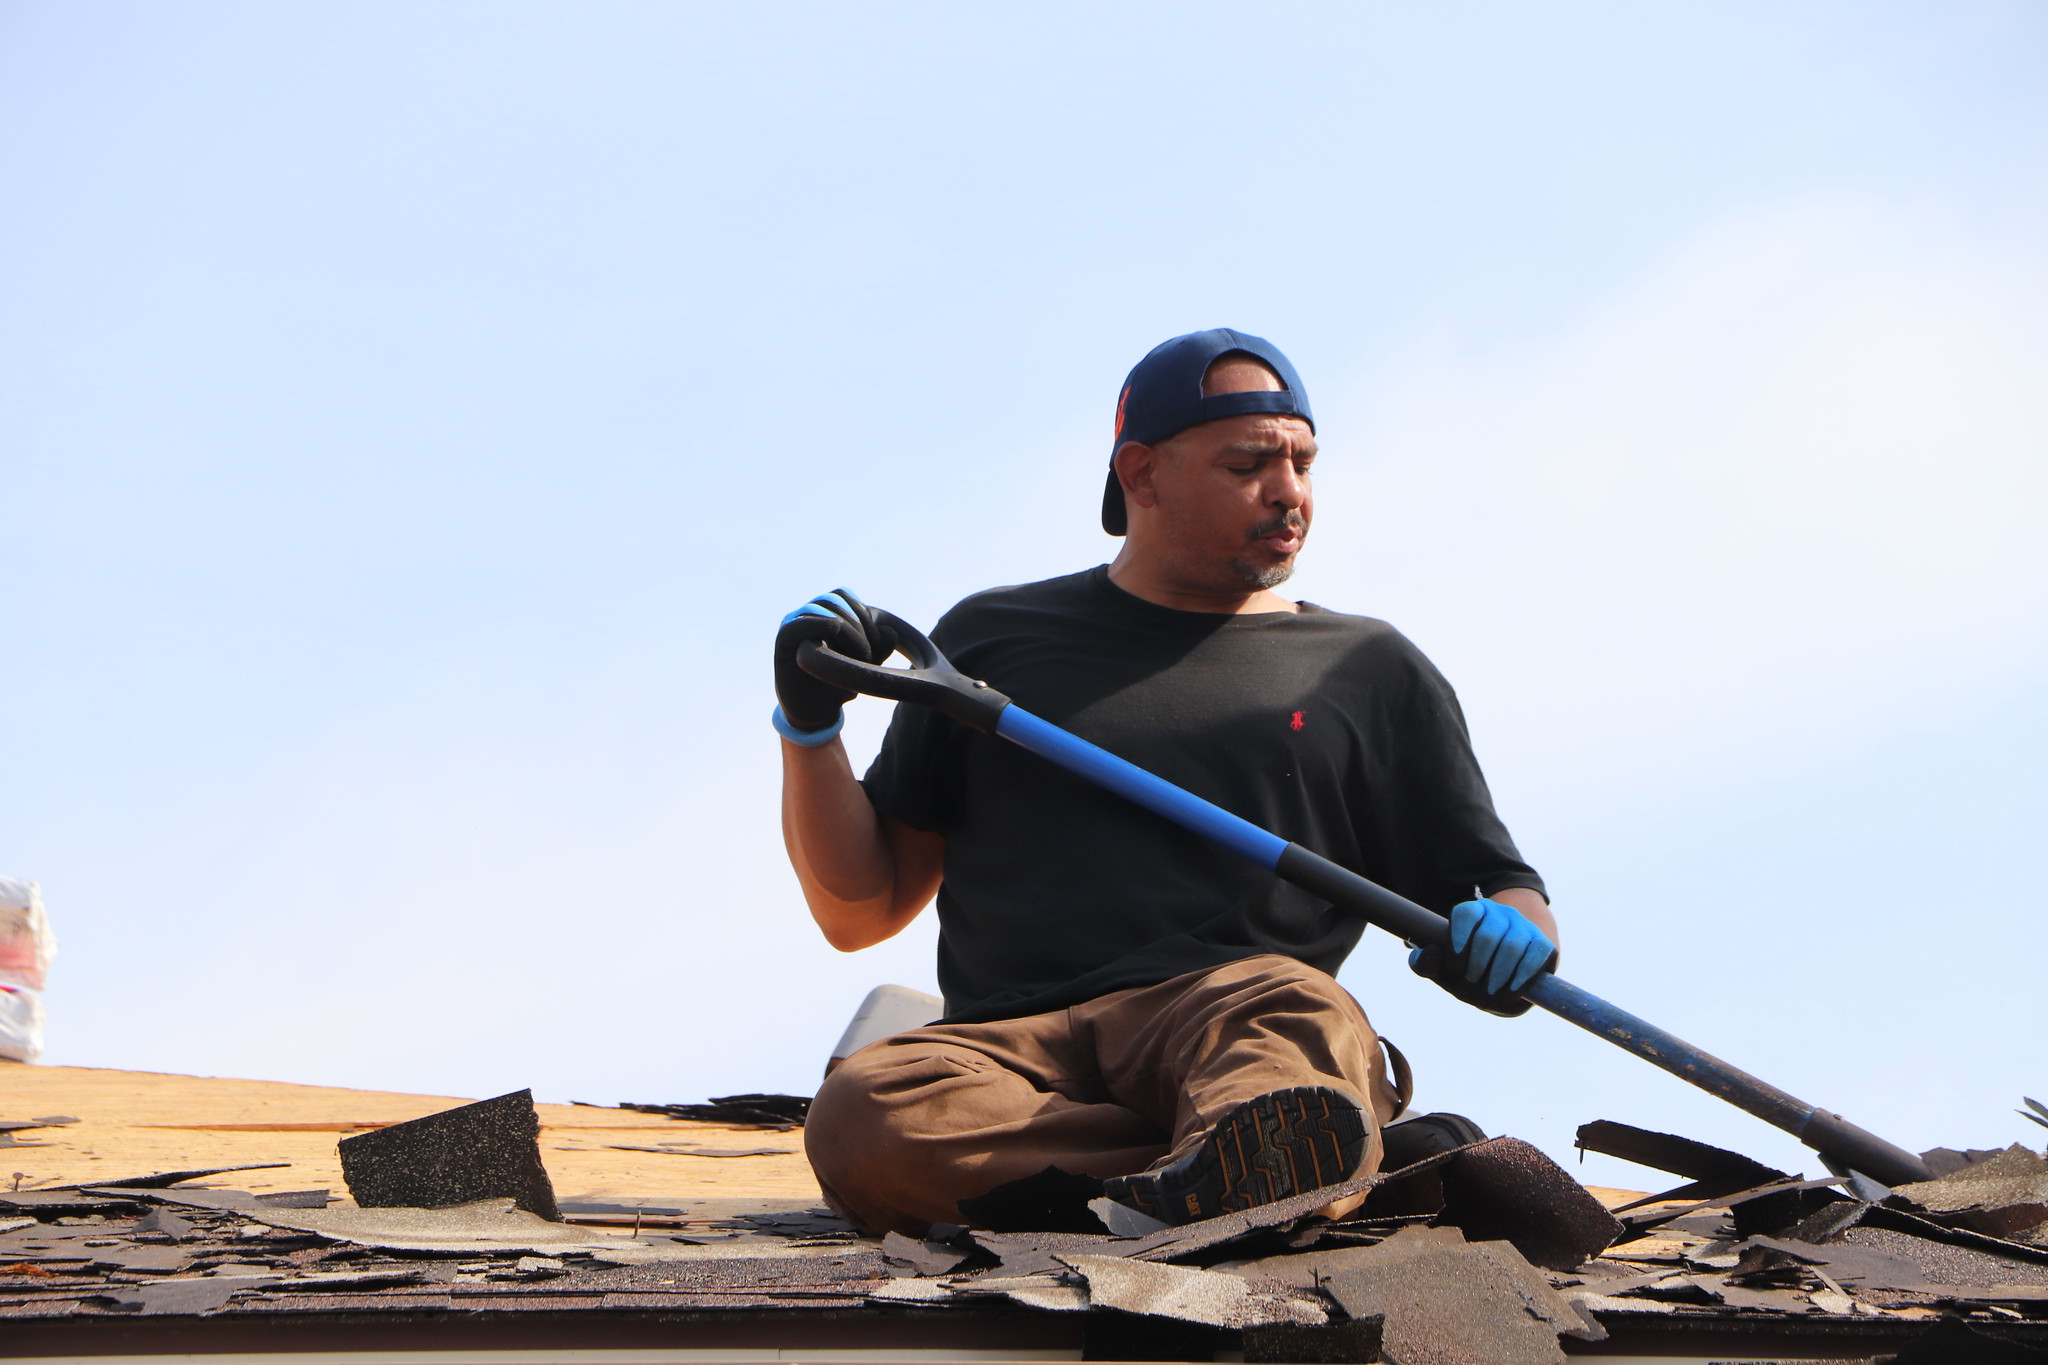 Roofing Contractors Best Suitable for Practical Work